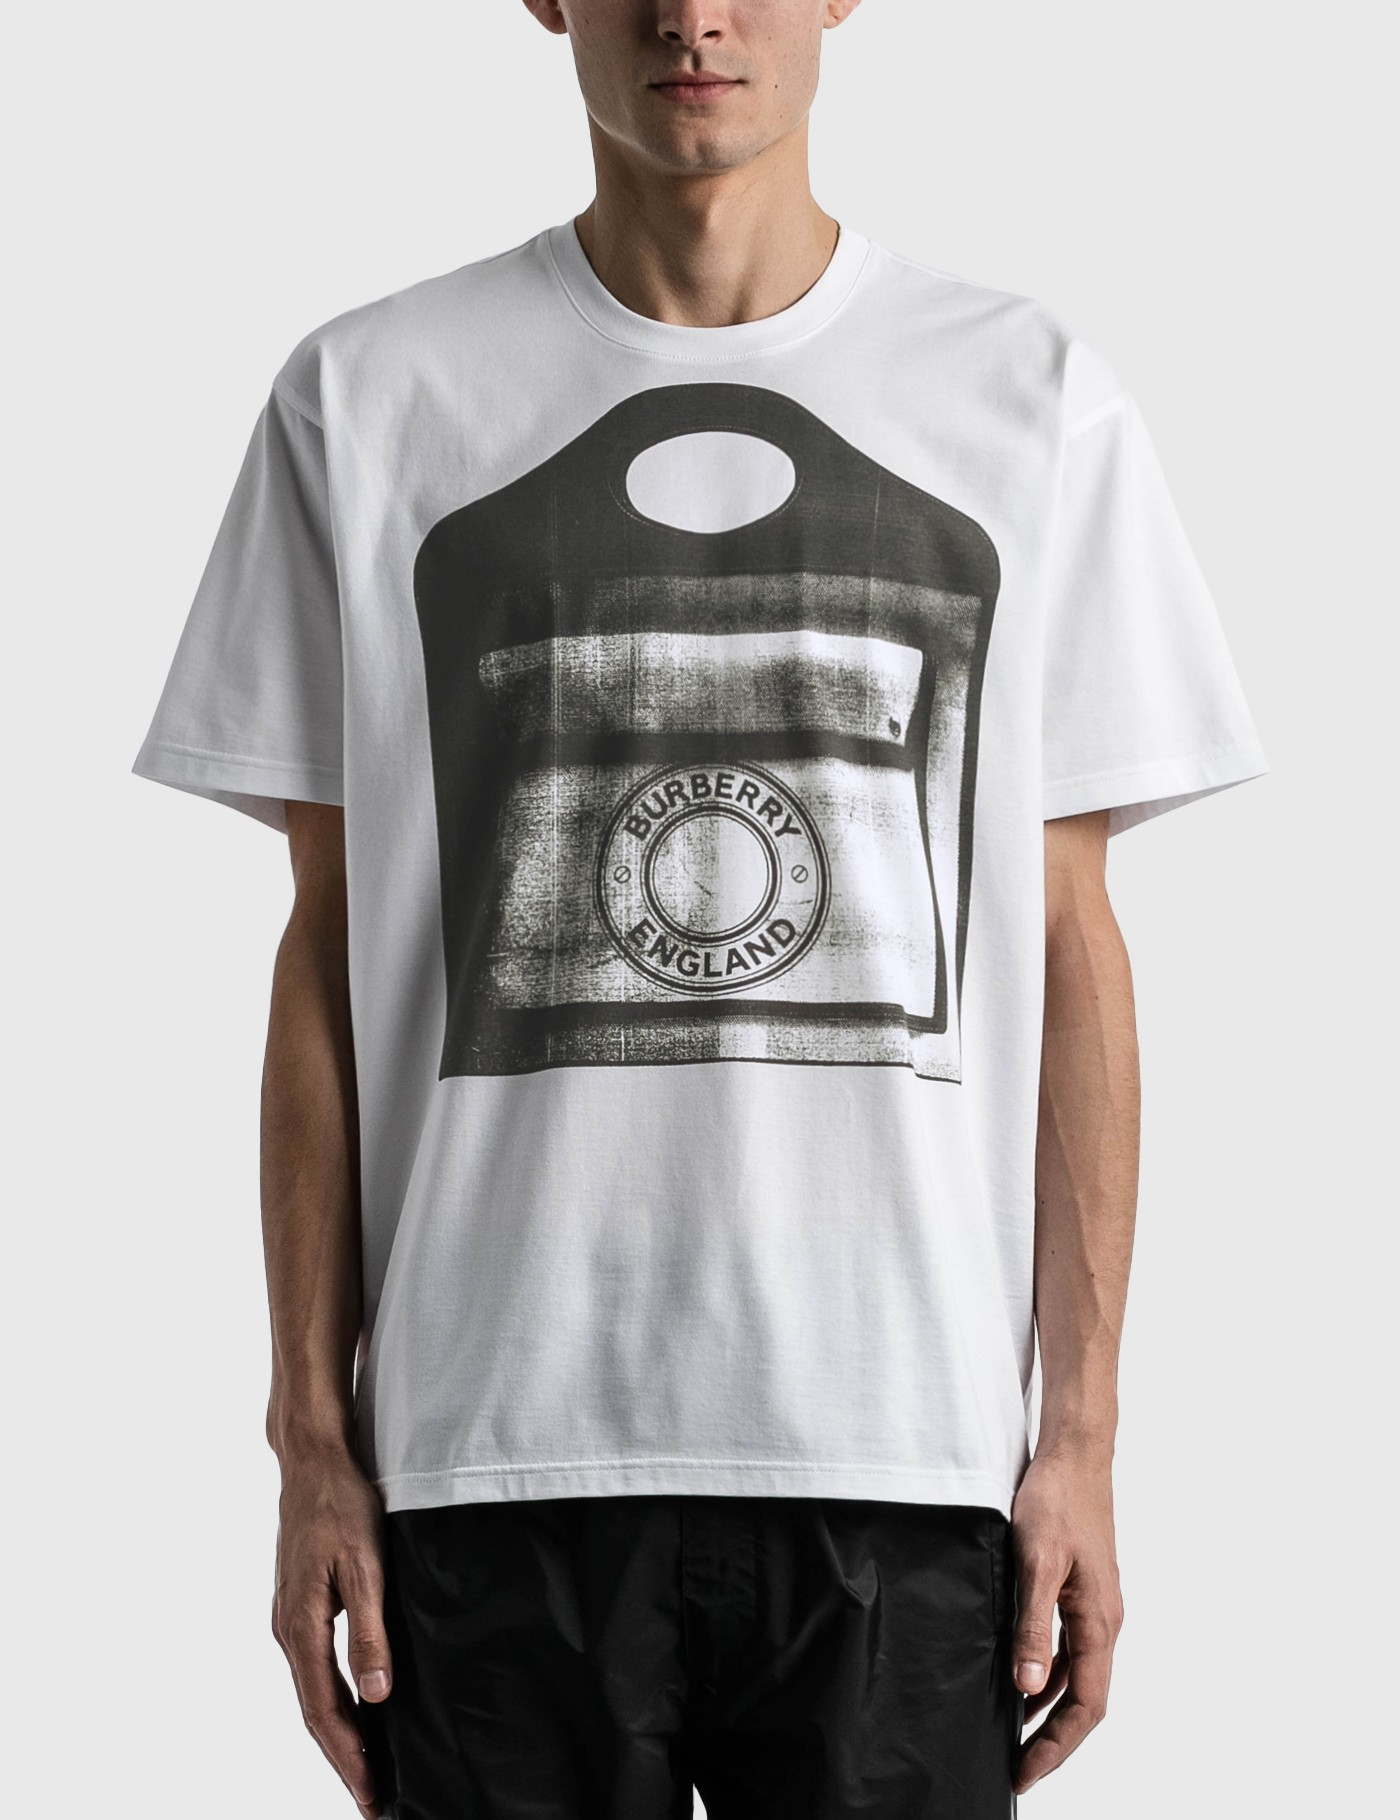 Burberry POCKET BAG PRINT COTTON JERSEY T-SHIRT